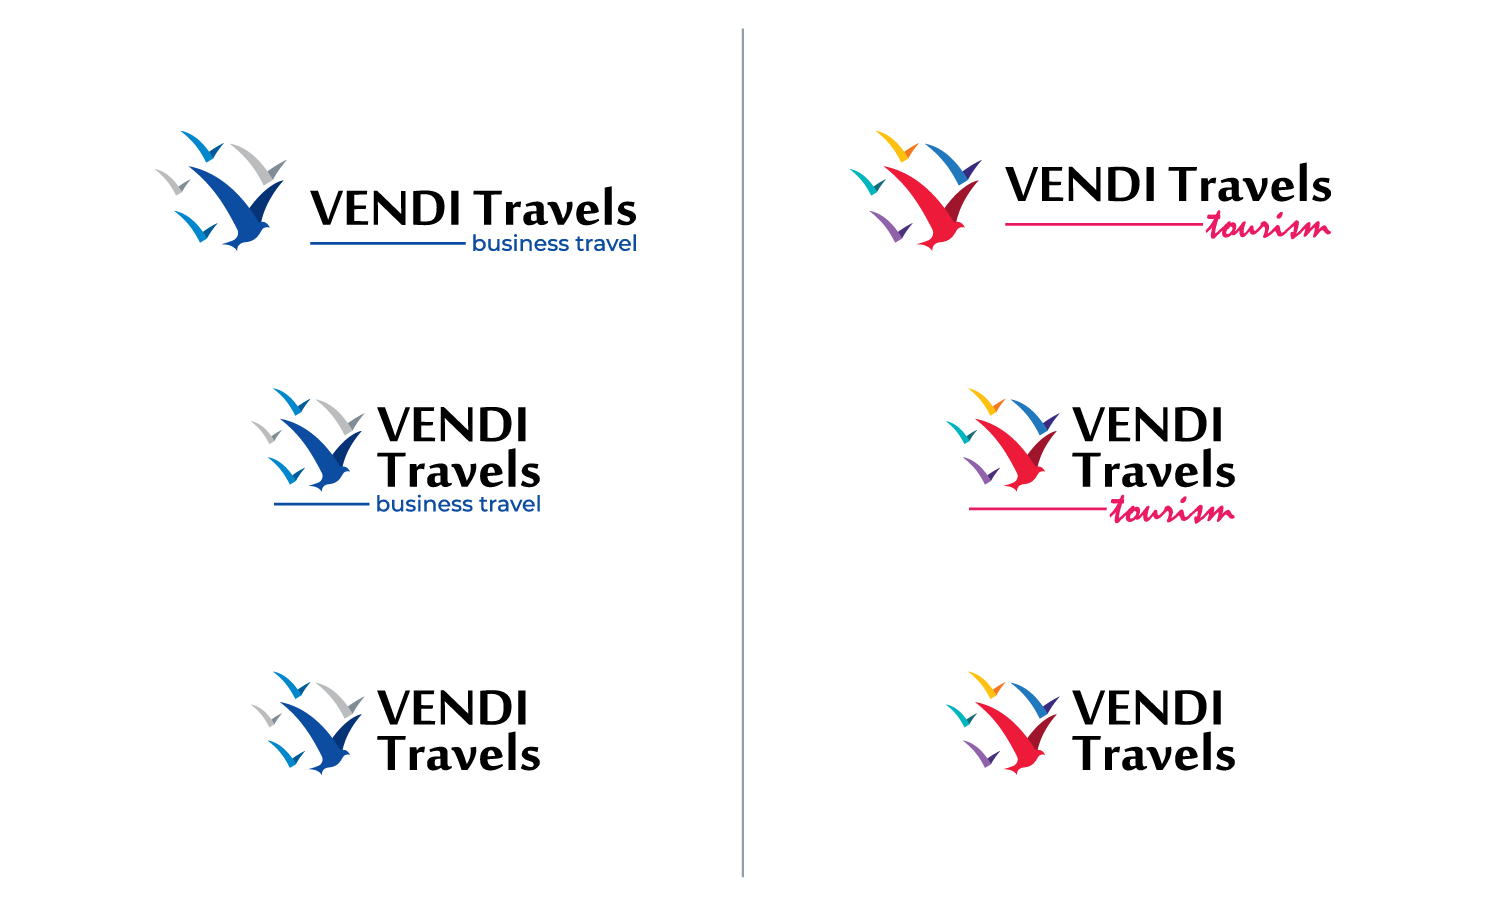 Create a borderless logo for the travel agency that makes your dreams come true